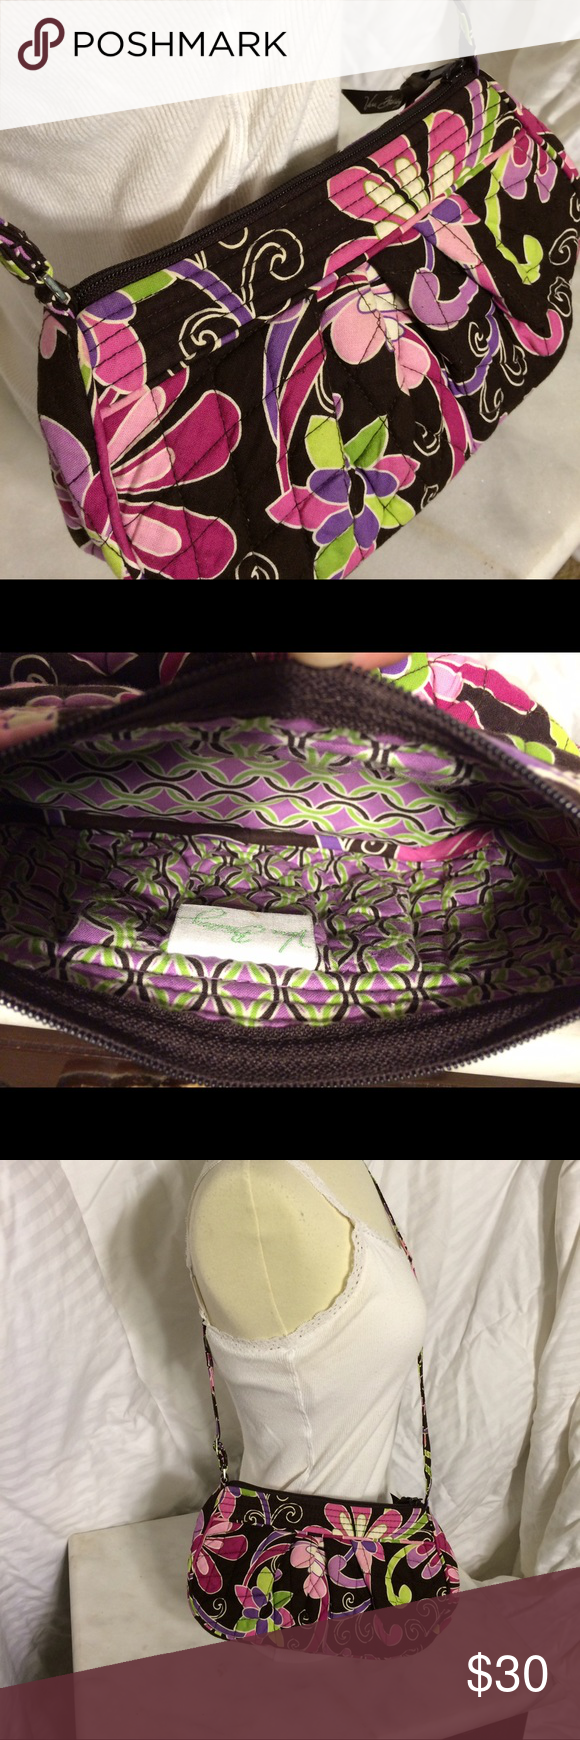 New Vera Bradley Purse Never used, brand new Vera bag! Perfect condition Vera Bradley Bags Crossbody Bags